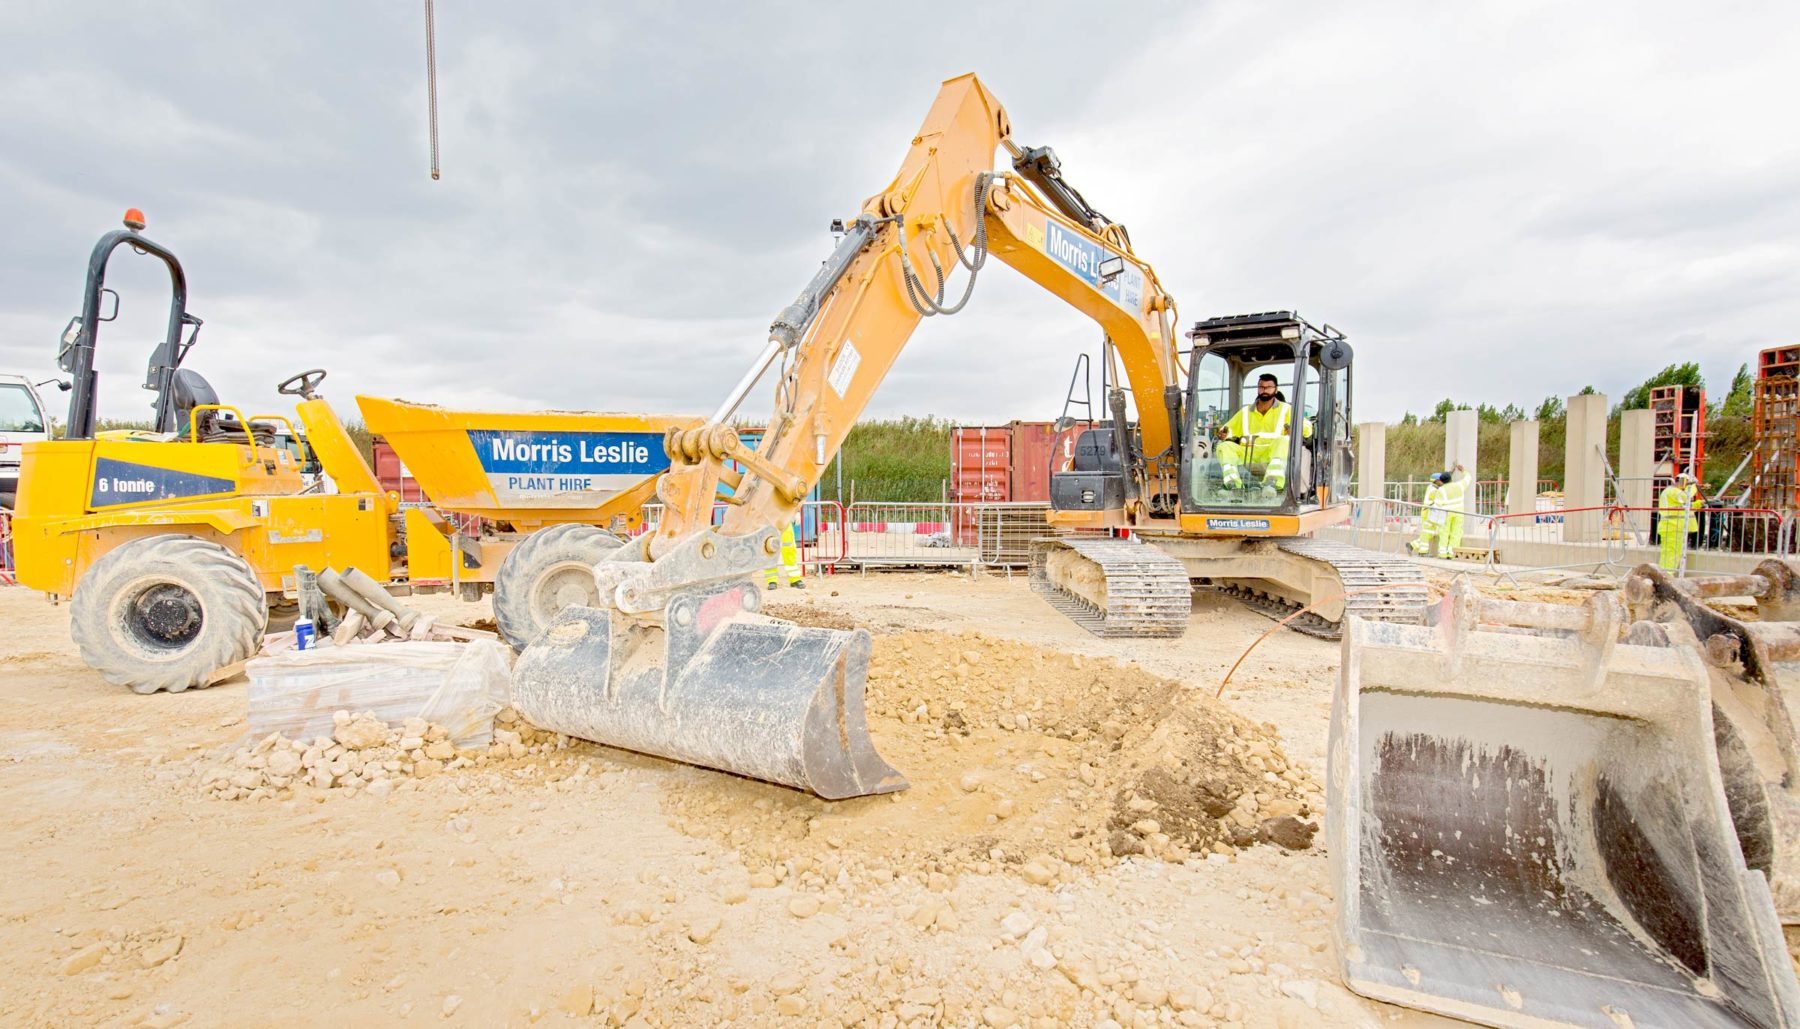 Close up of excavator on construction site, bucket in forefront of shot